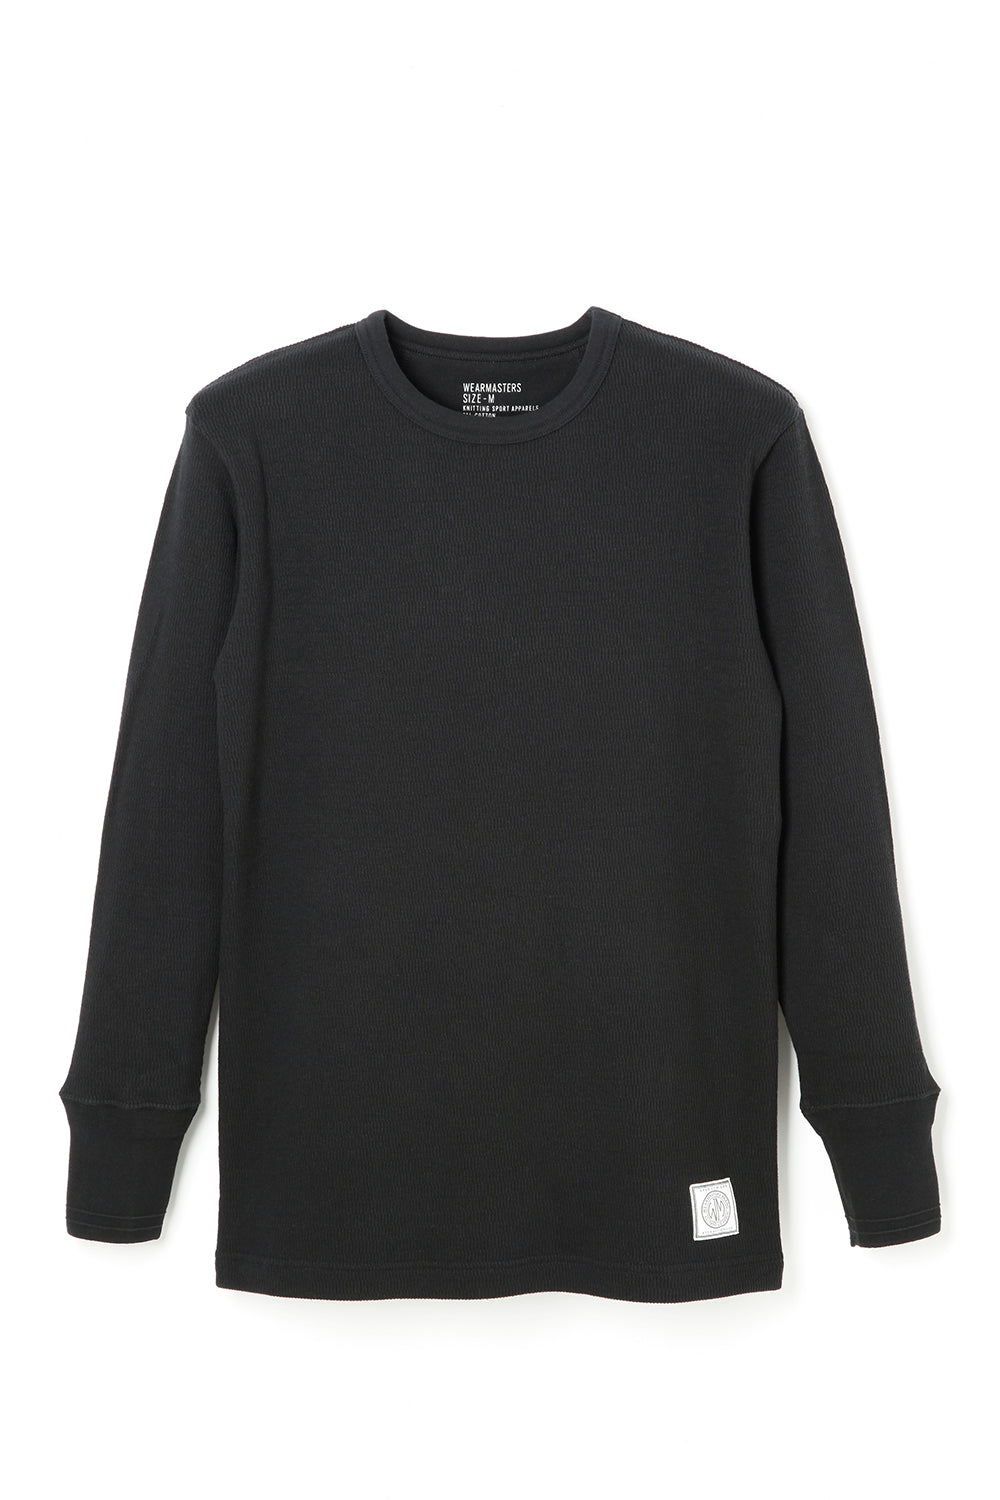 Lot.680 Crew Neck Thermal -Black-